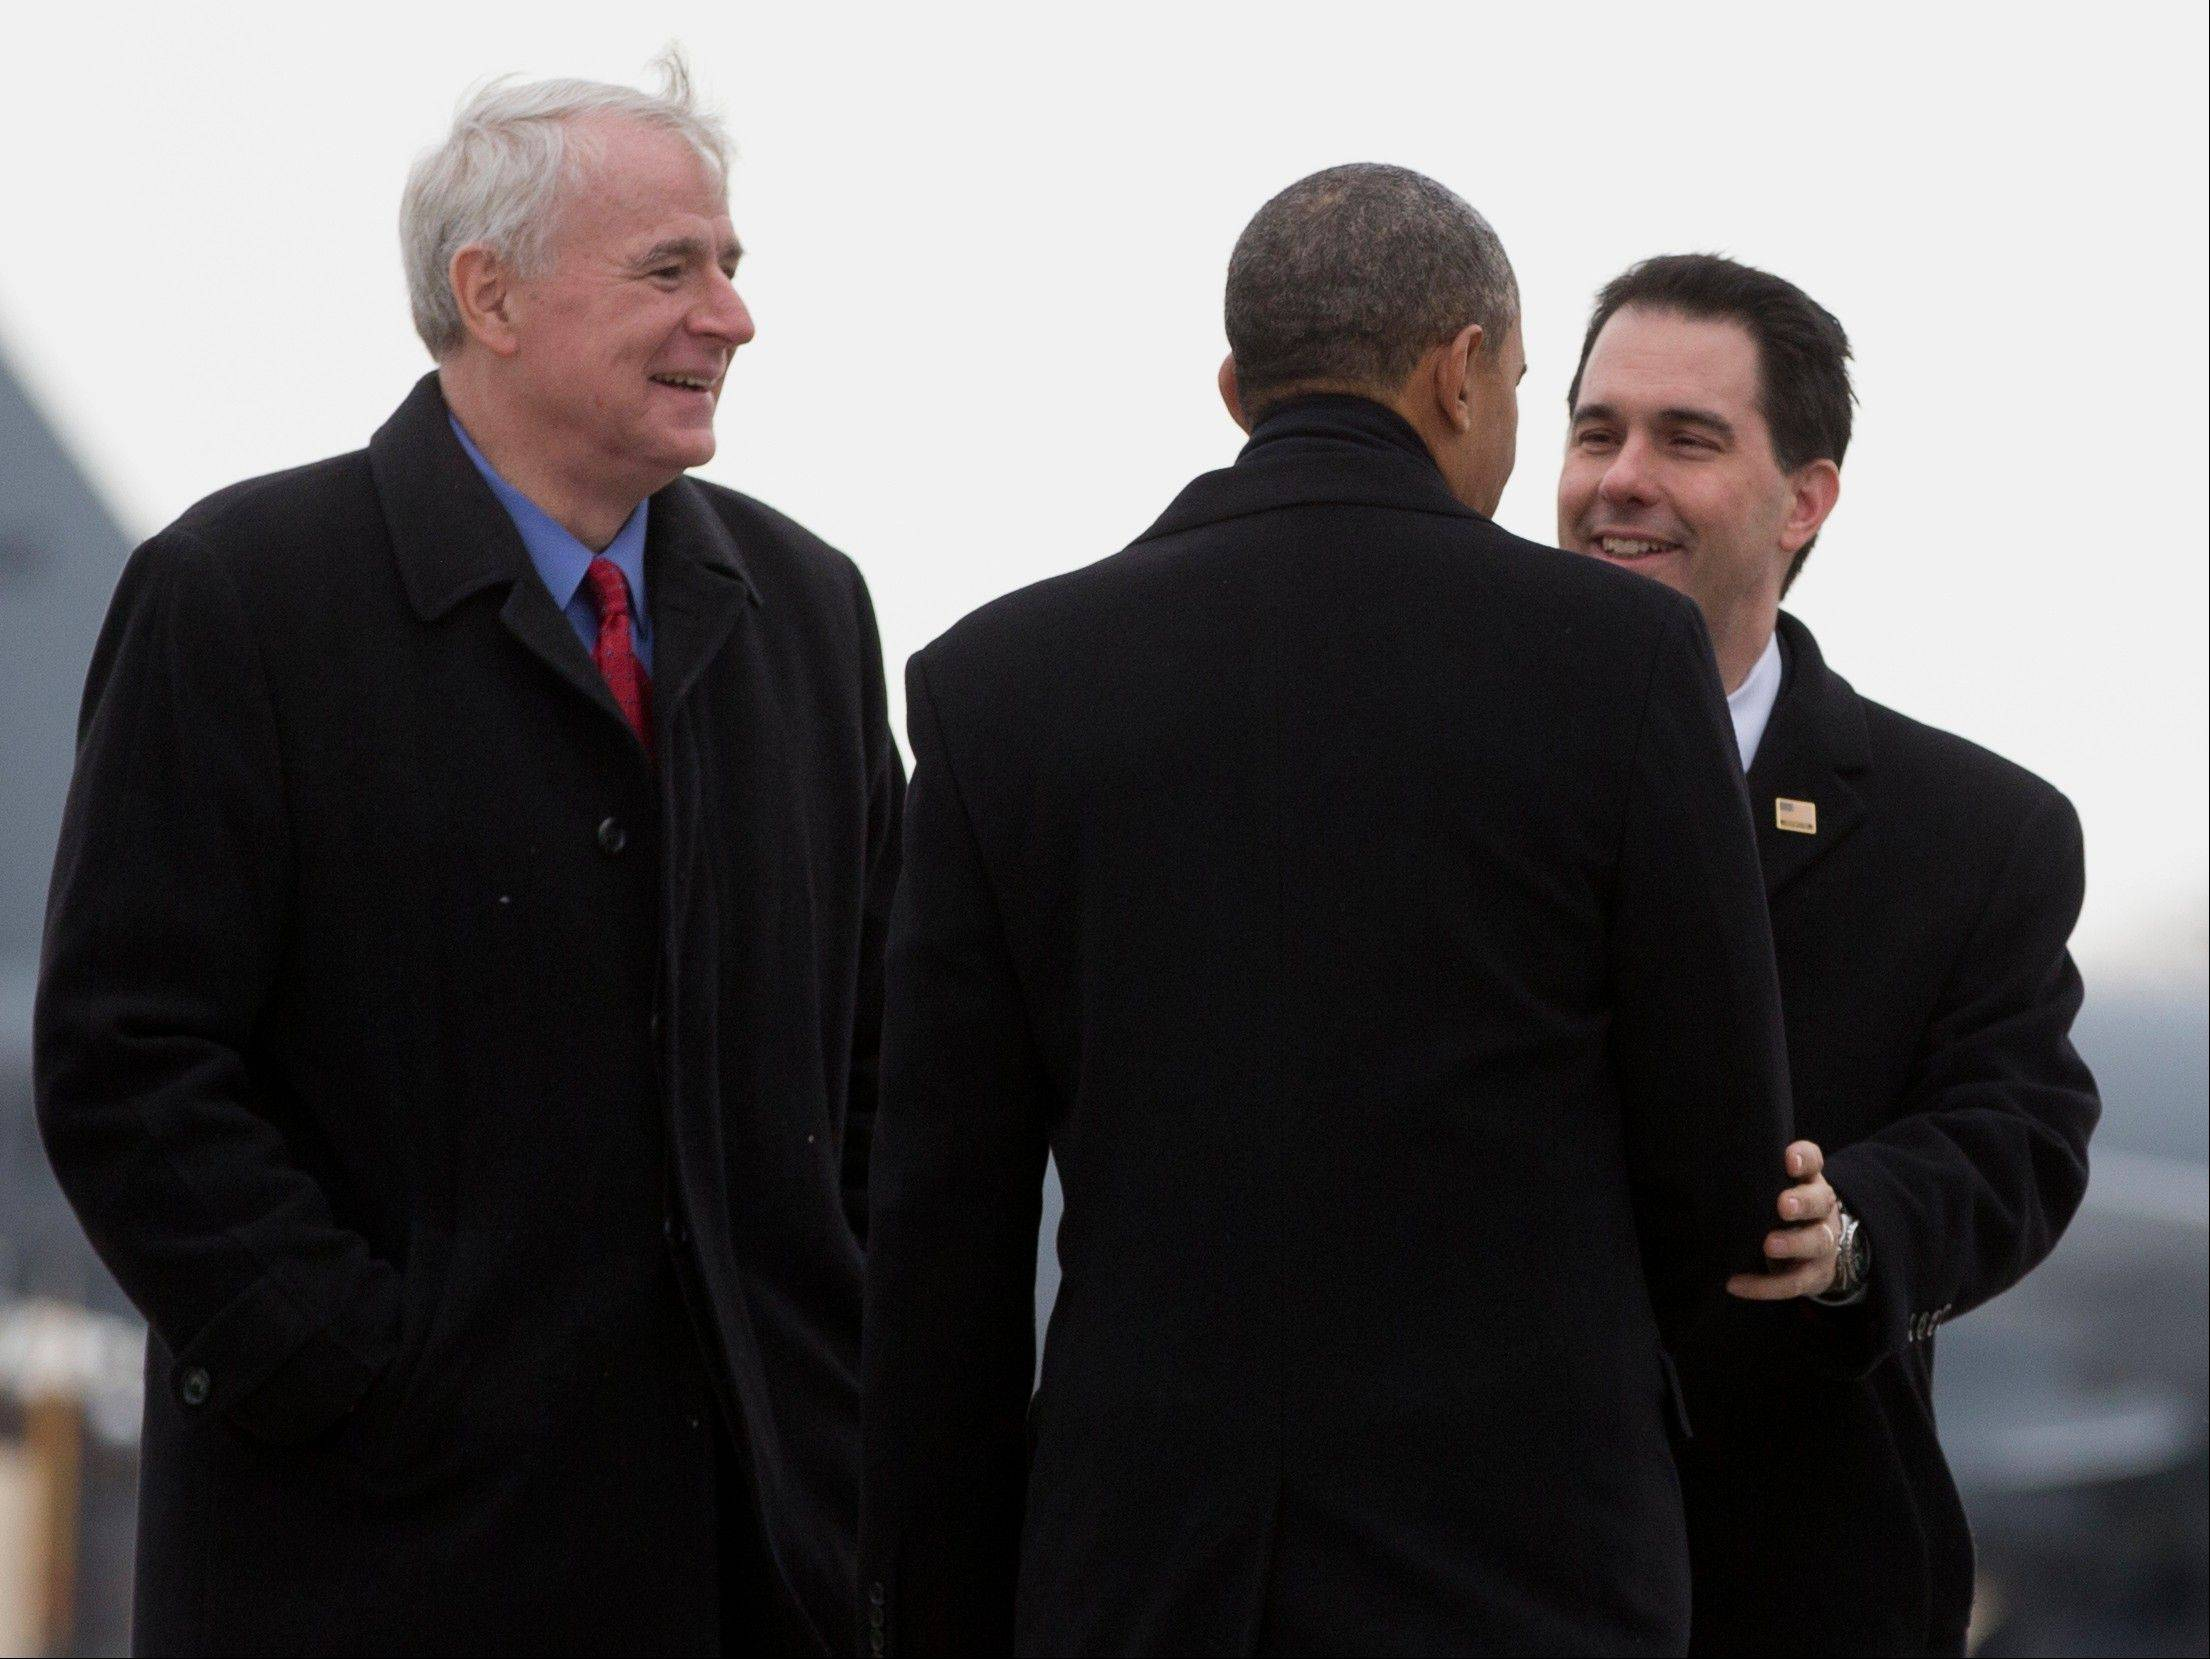 President Barack Obama is greeted by Wis. Gov. Scott Walker, right, and Milwaukee Mayor Tom Barrett as he steps from Air Force One upon his arrival at the Wisconsin Air National Guard 128th Air Refueling Wing in Milwaukee. He will speak at General Electricís Waukesha Gas Engines facility in Waukesha, Wis., about job training.